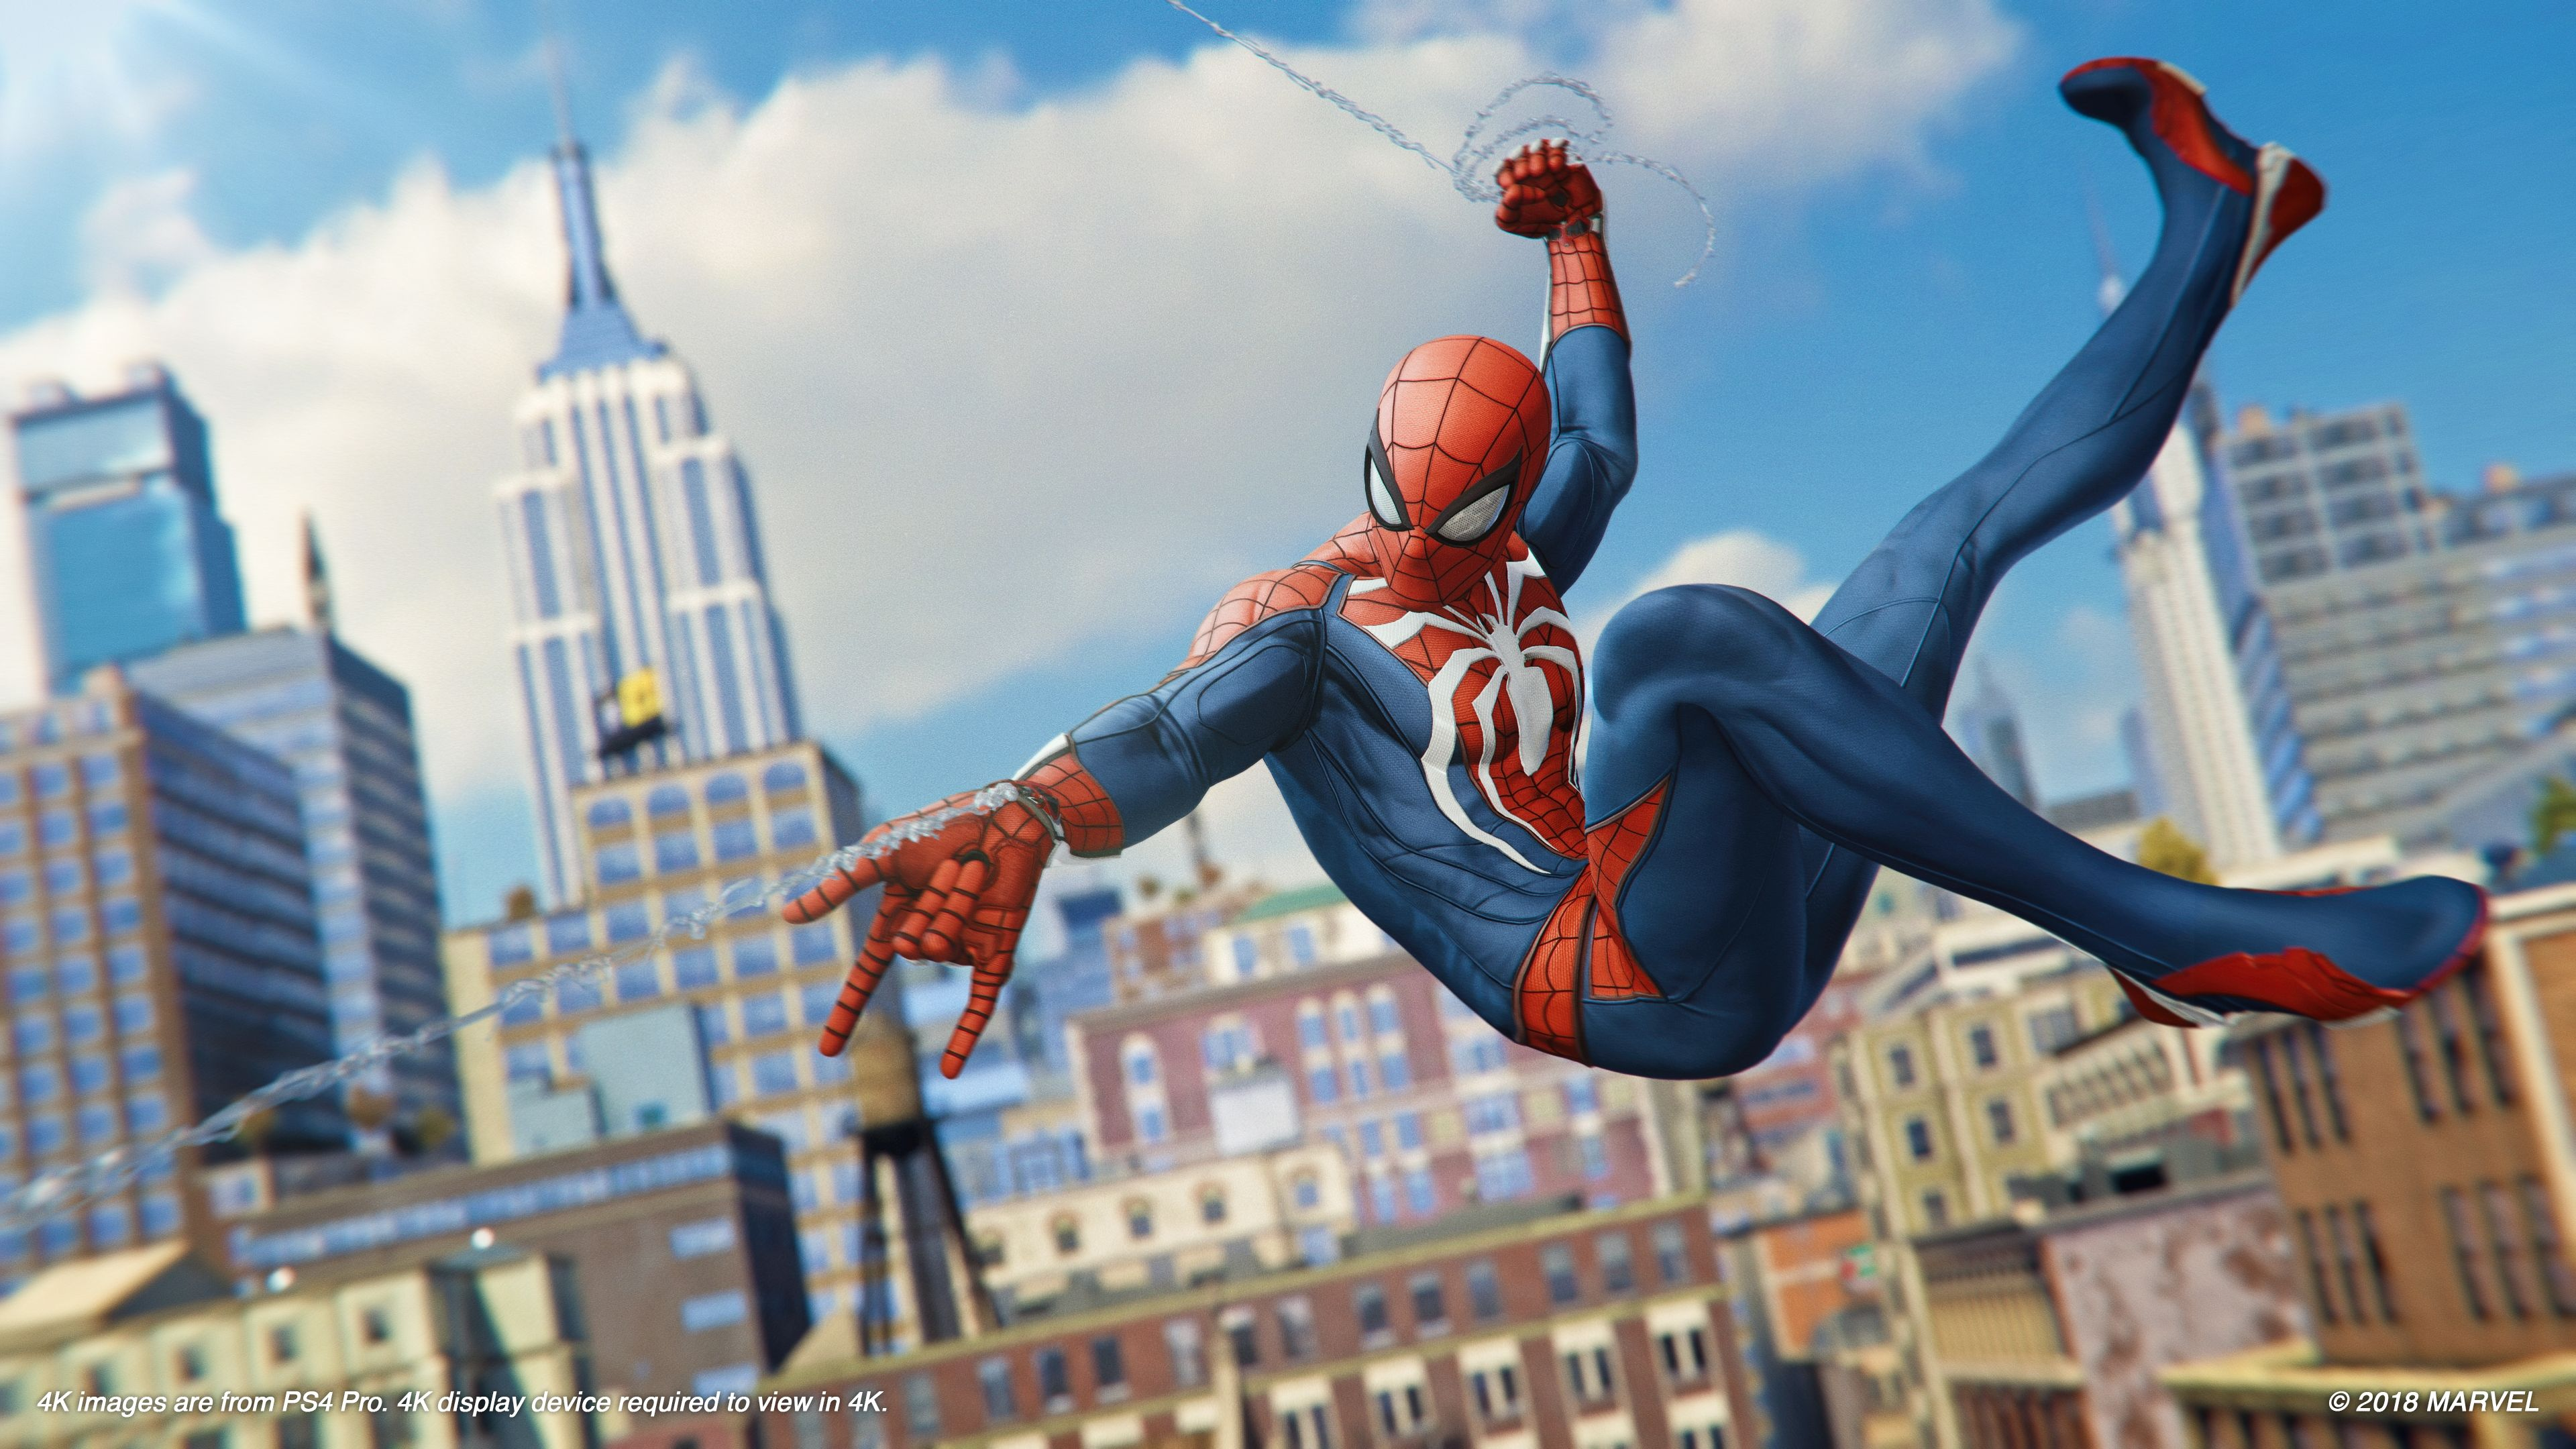 Spider Man Playstation 4 Wallpapers Top Free Spider Man